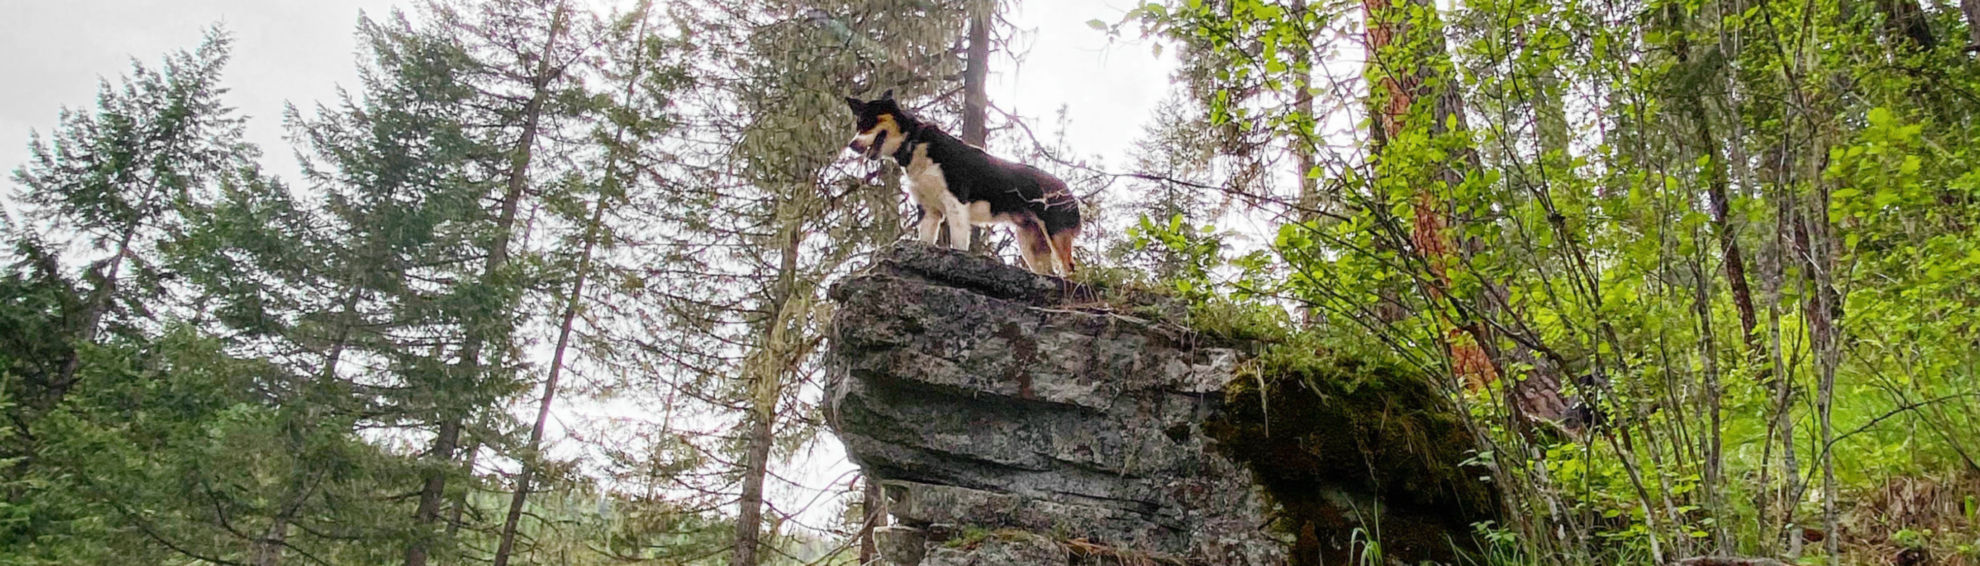 Dog standing on a boulder in the woods